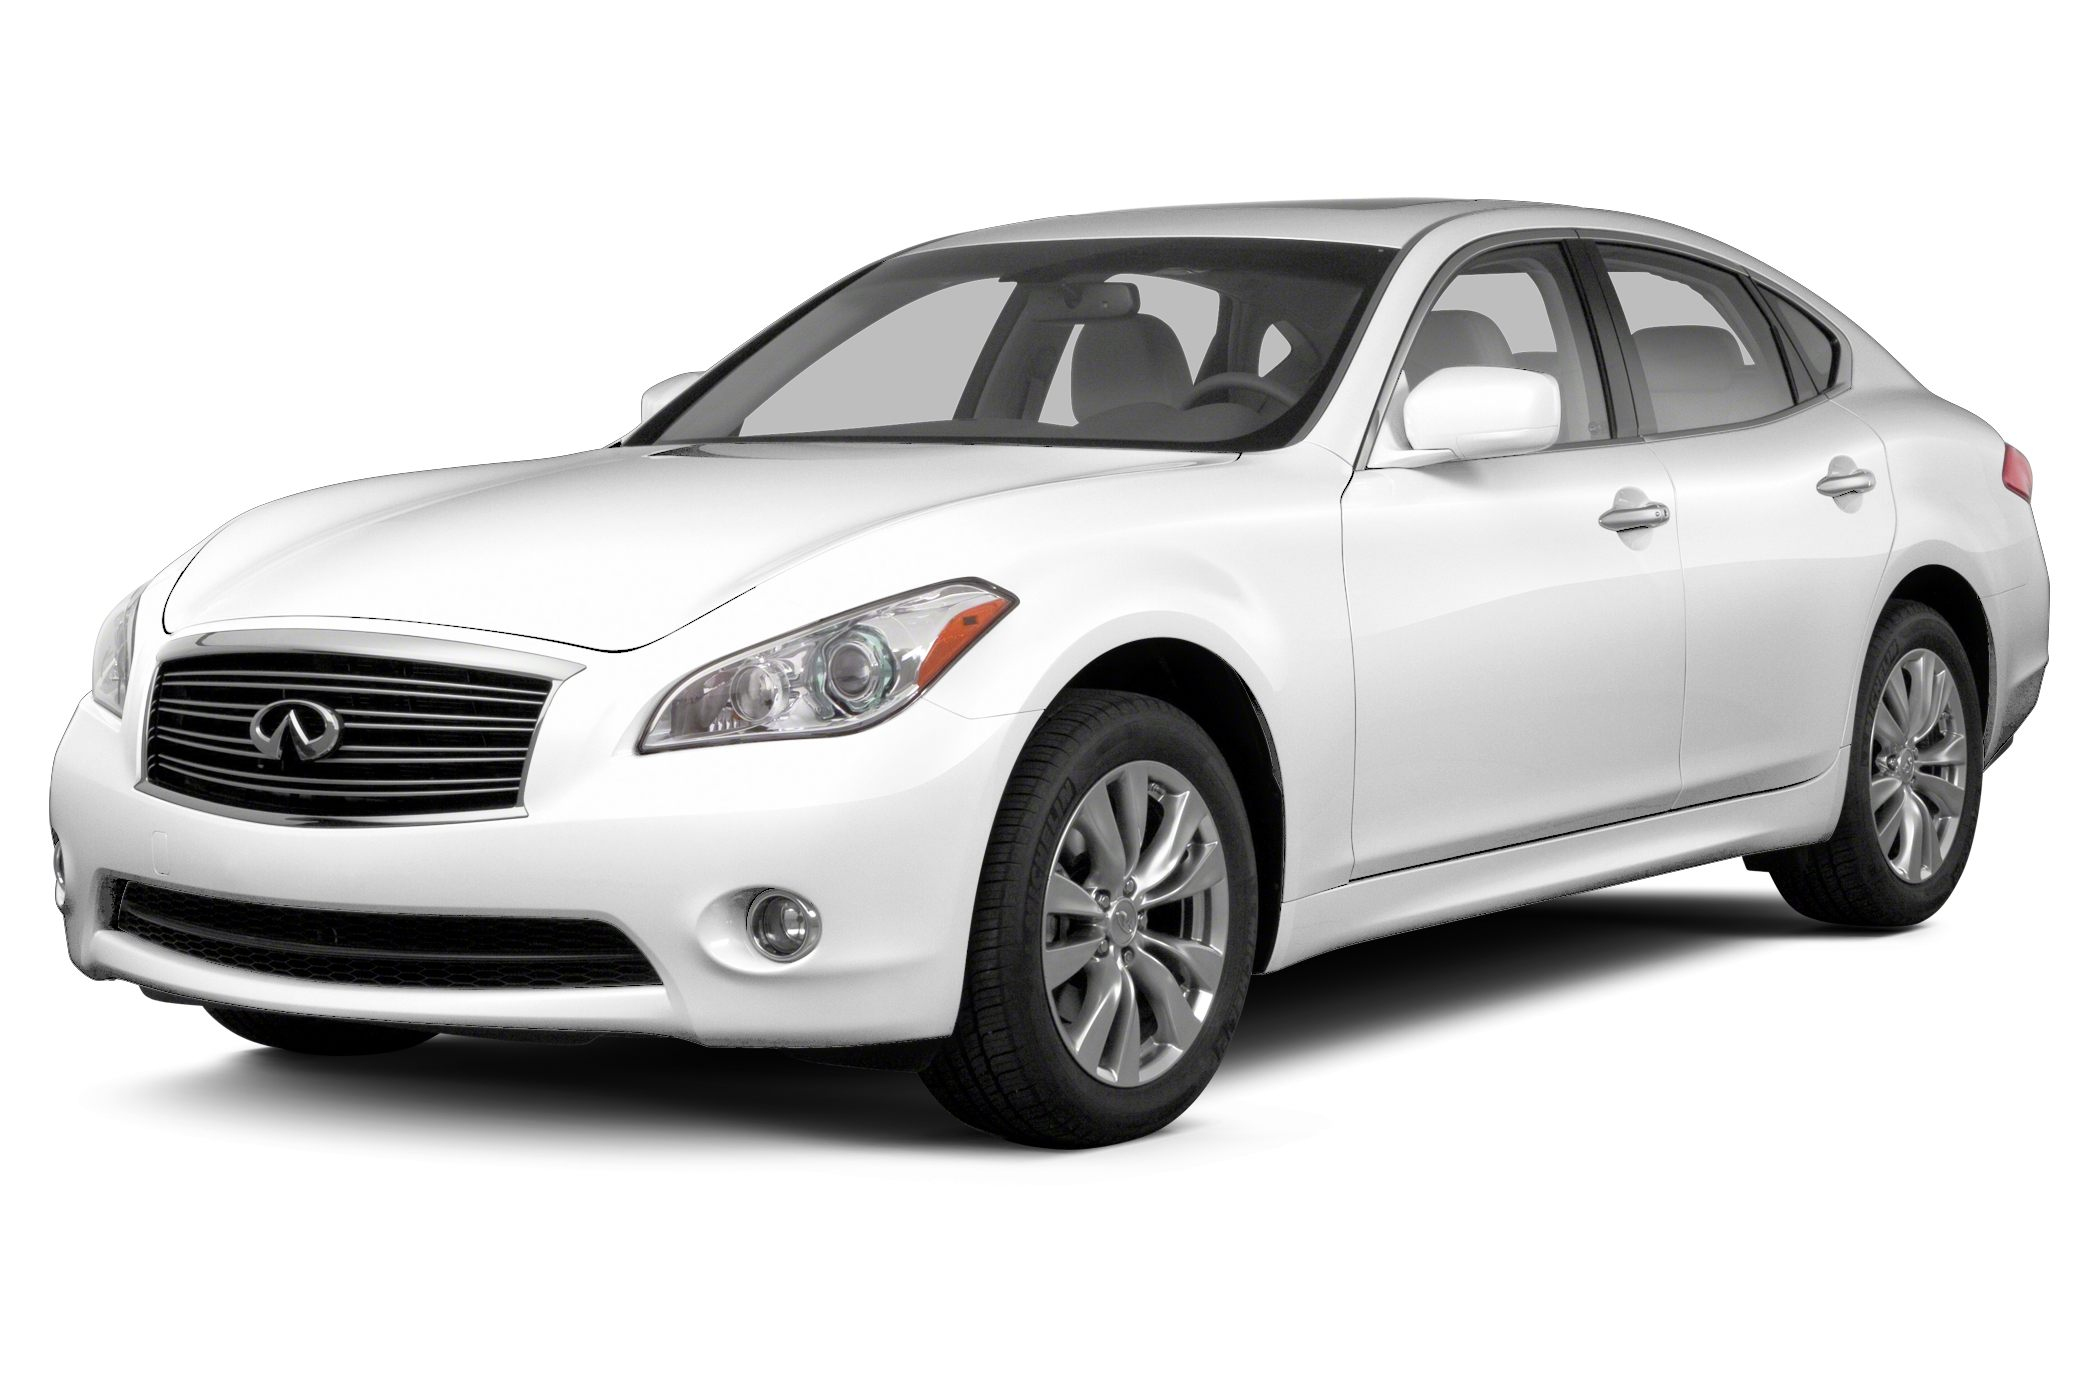 2013 Infiniti M37 Base Sedan for sale in Palm Springs for $44,995 with 12,306 miles